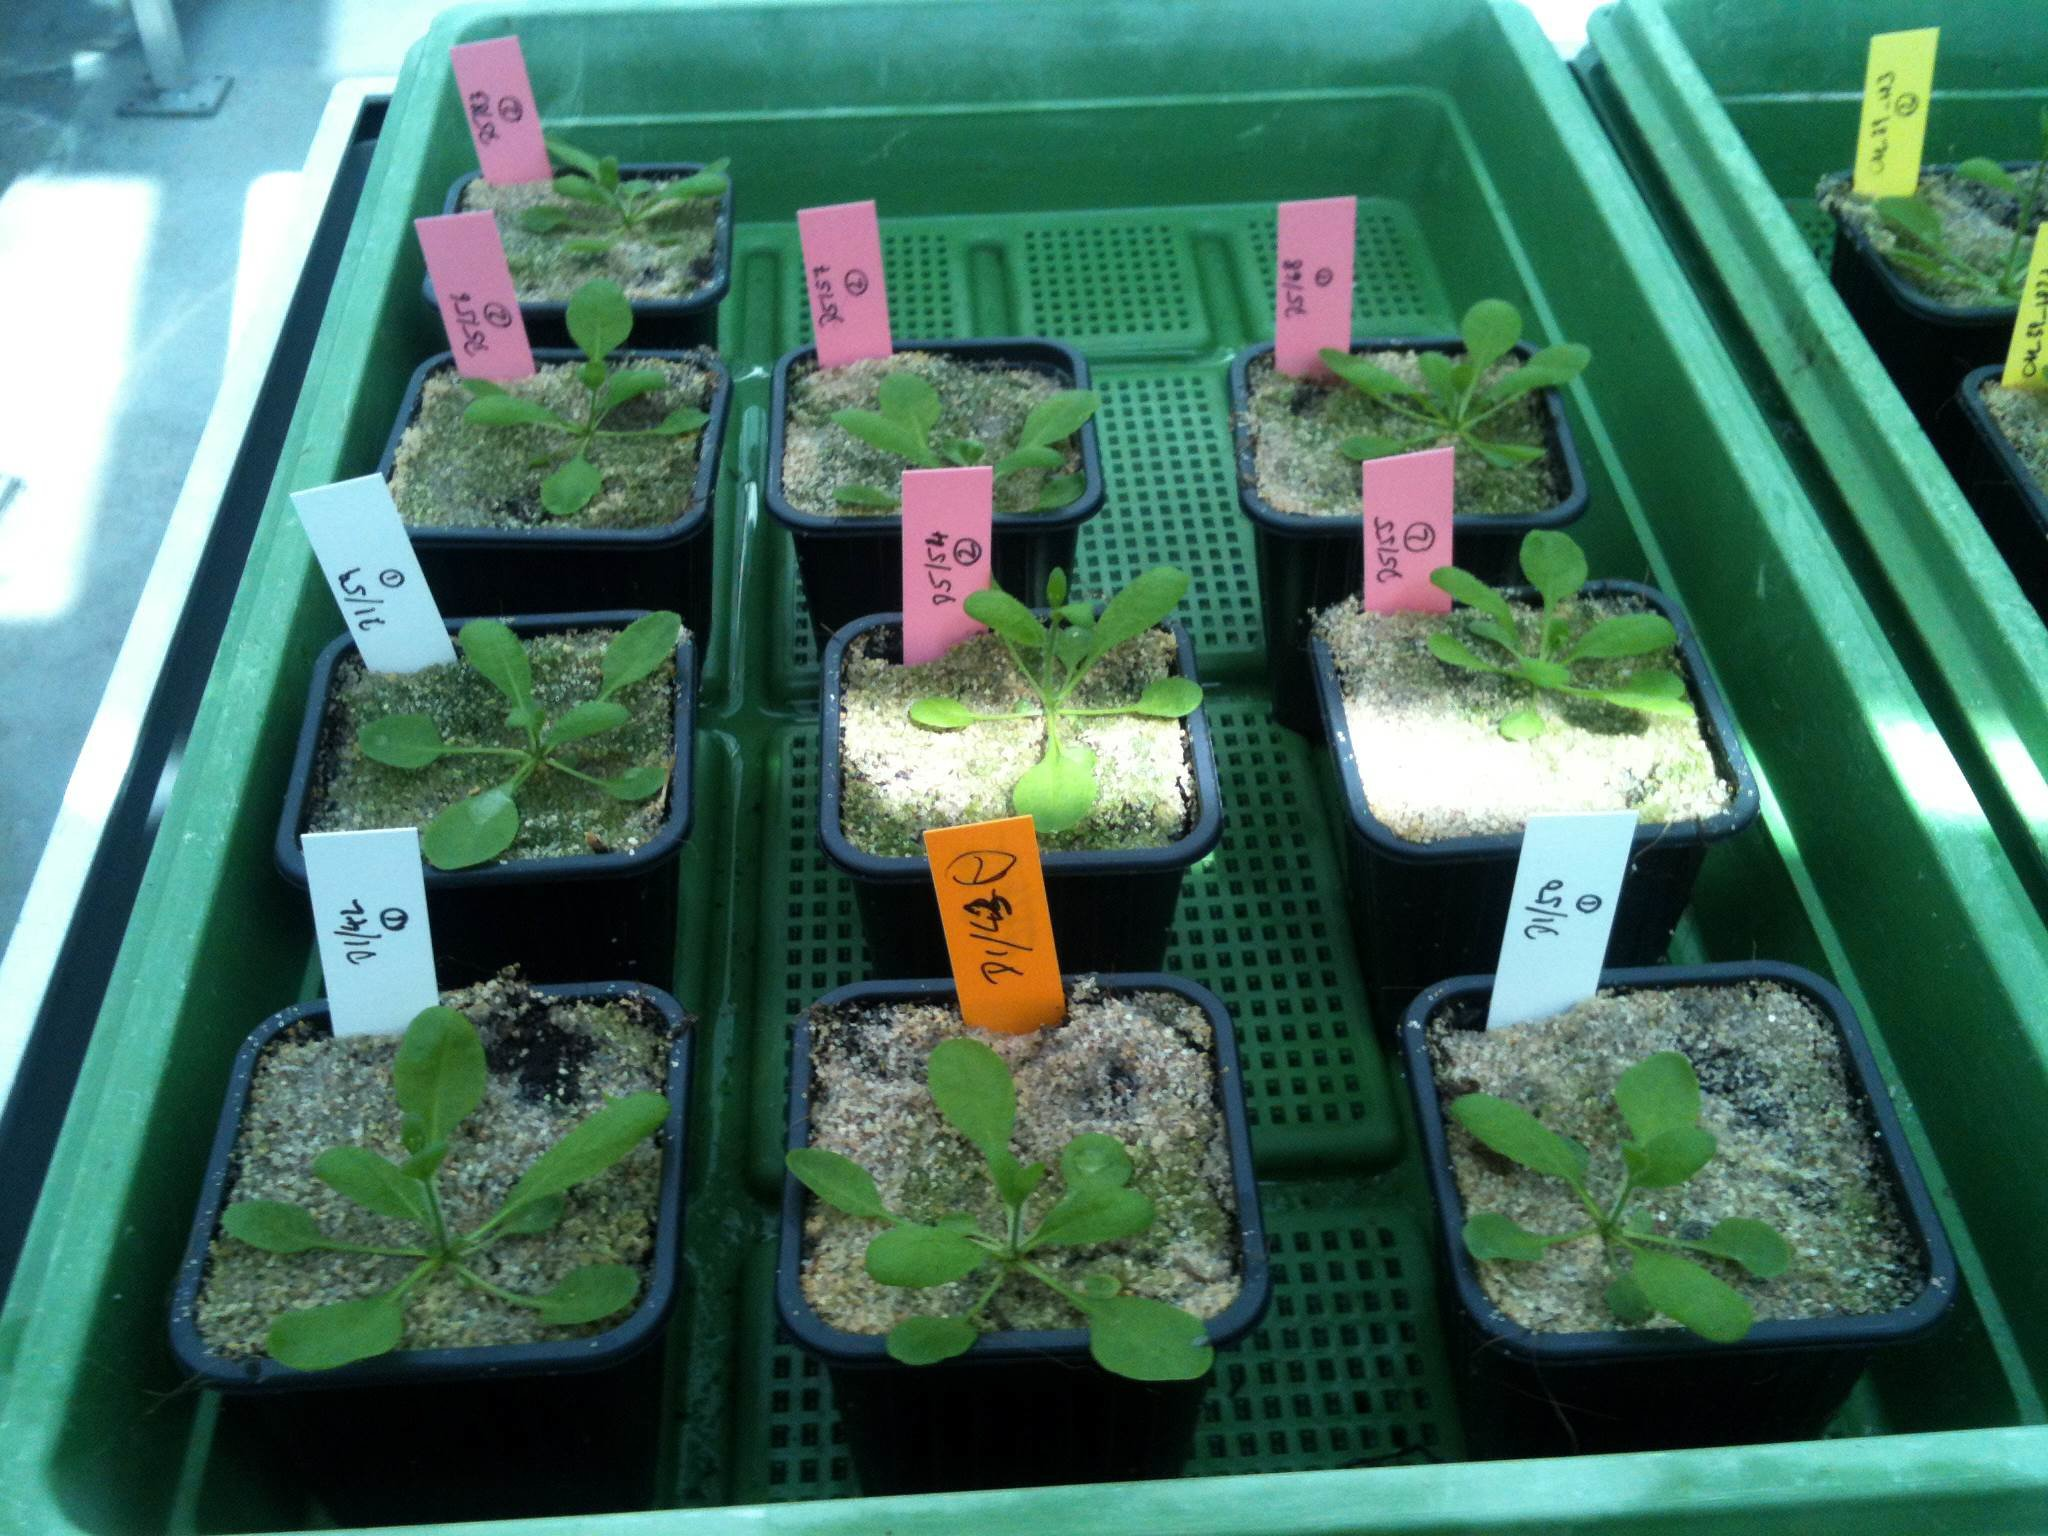 Exploiting epigenetic variation for plant breeding